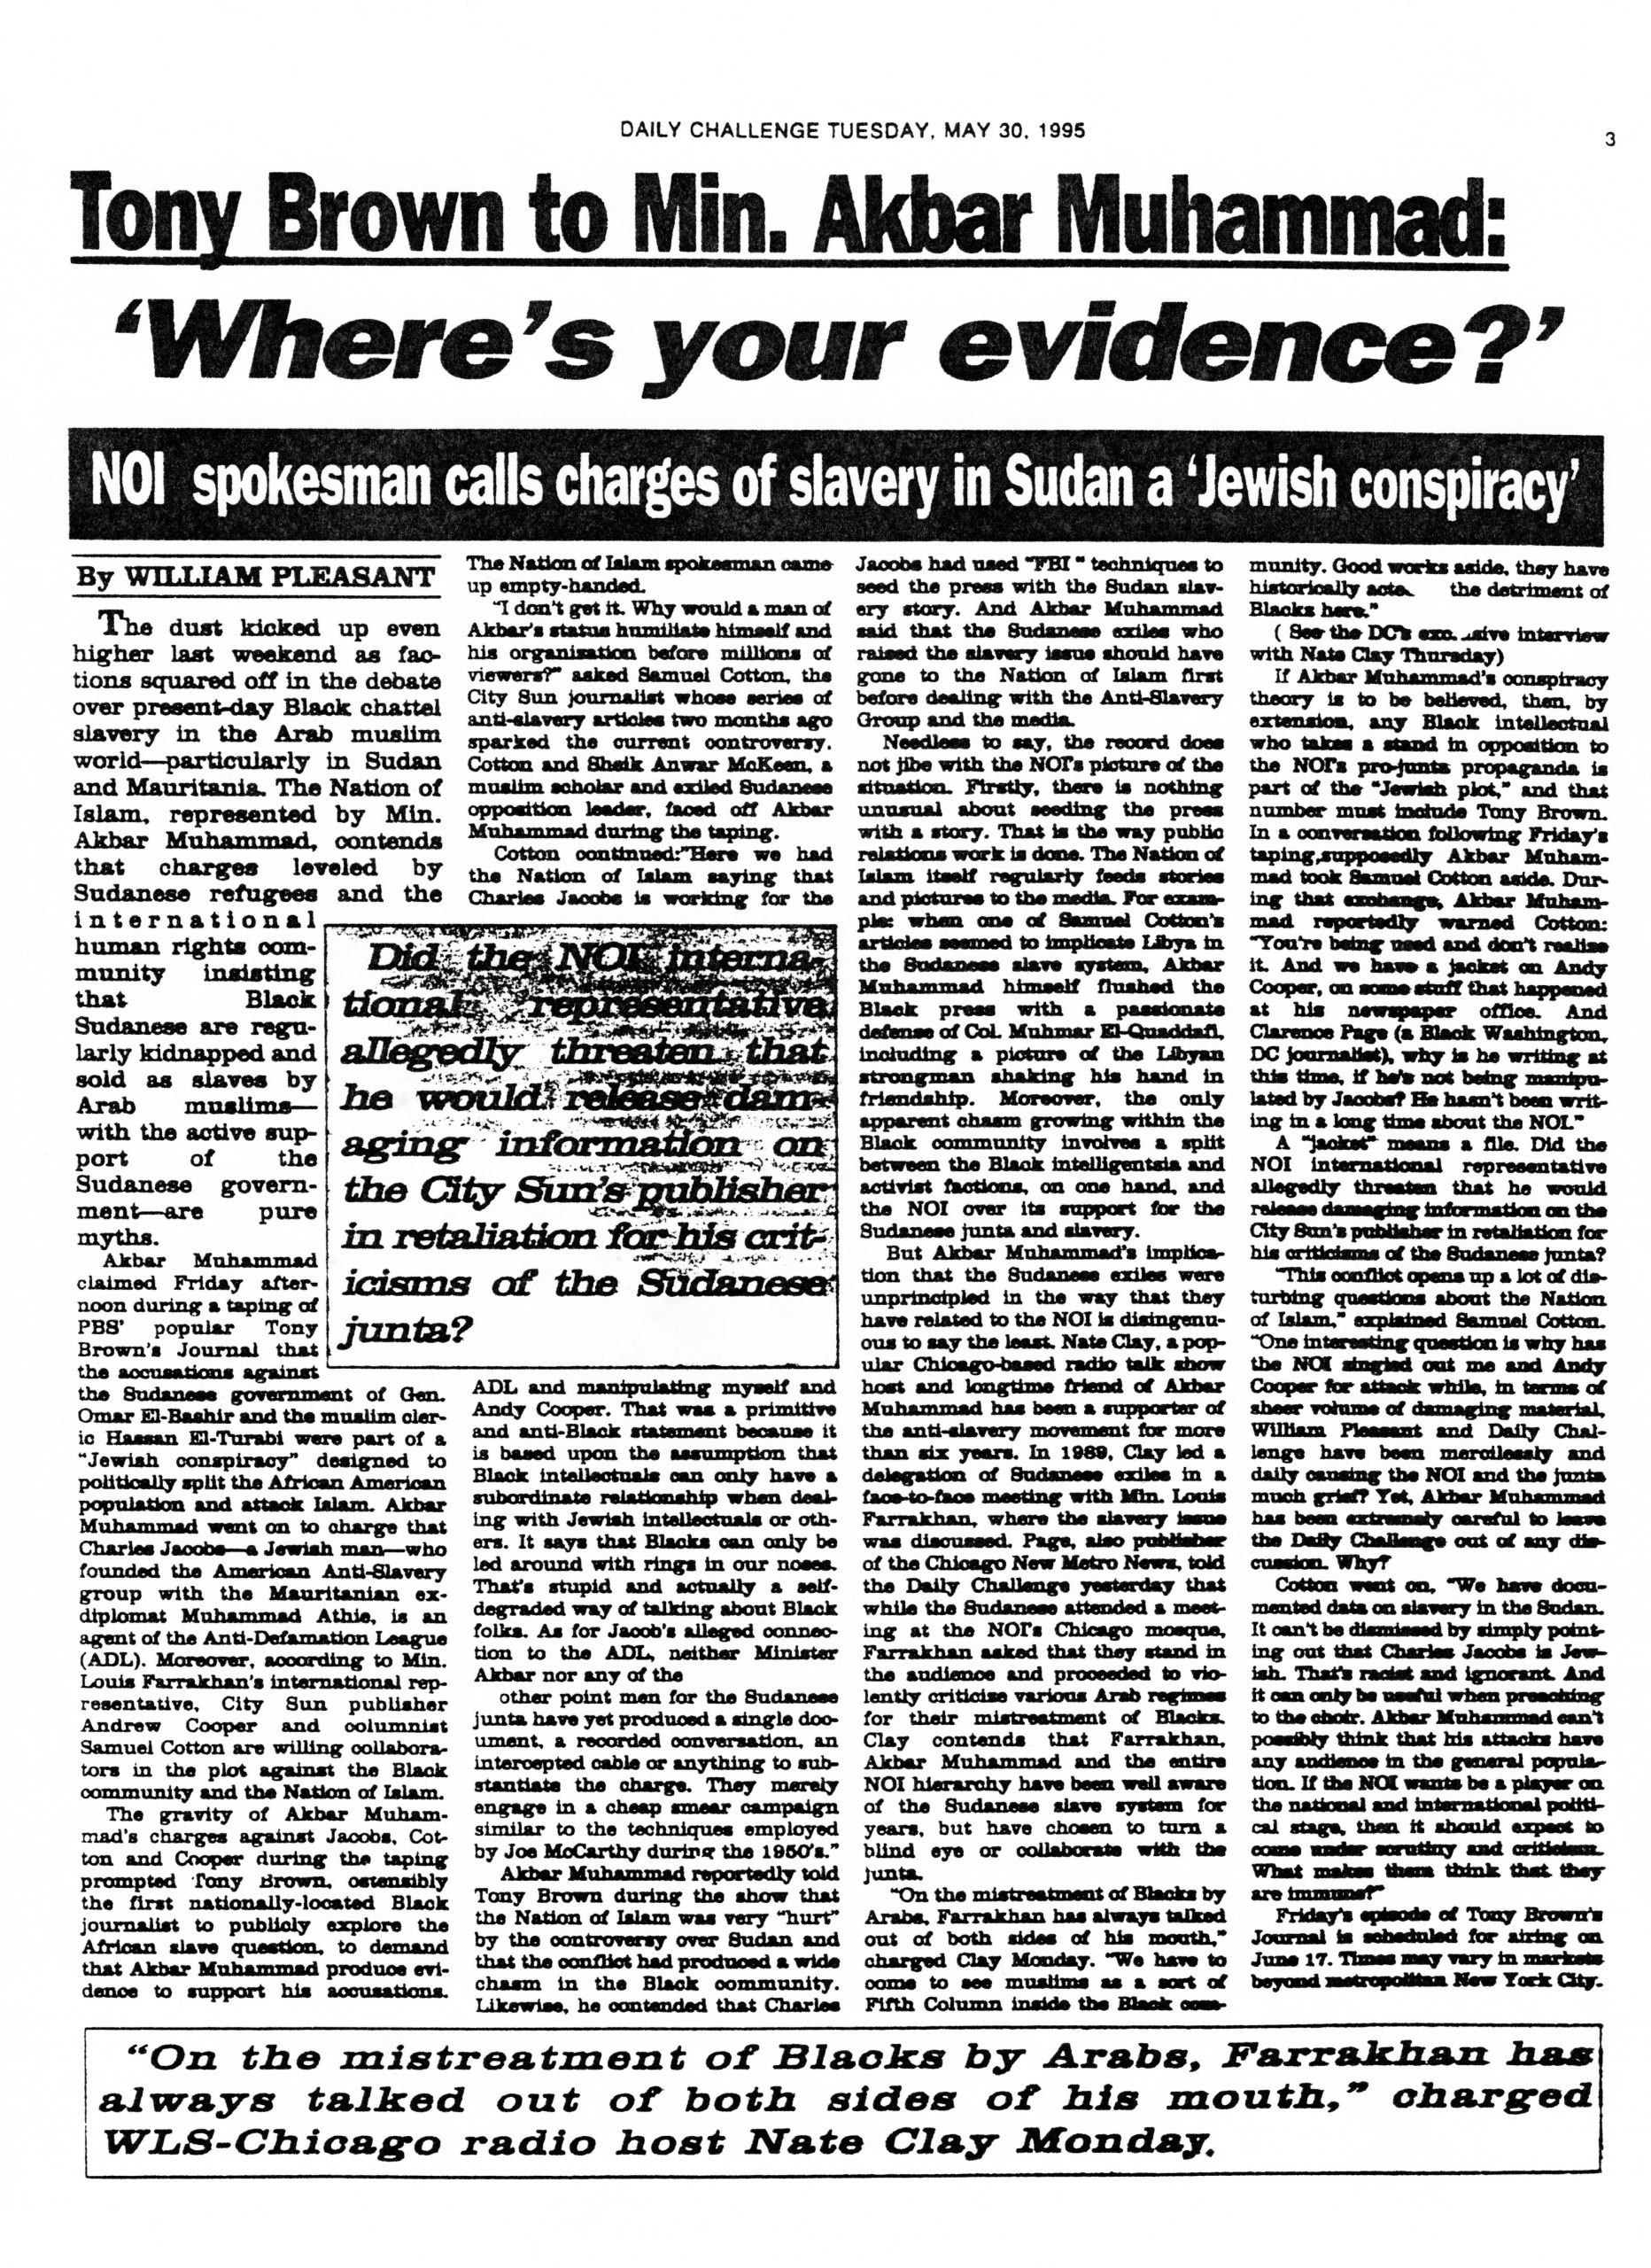 """William Pleasant, """"Tony Brown to Min. Akbar Muhammad – 'Where's Your Evidence?'"""", """"The Daily Challenge,"""" May 30, 1995, p. 3"""